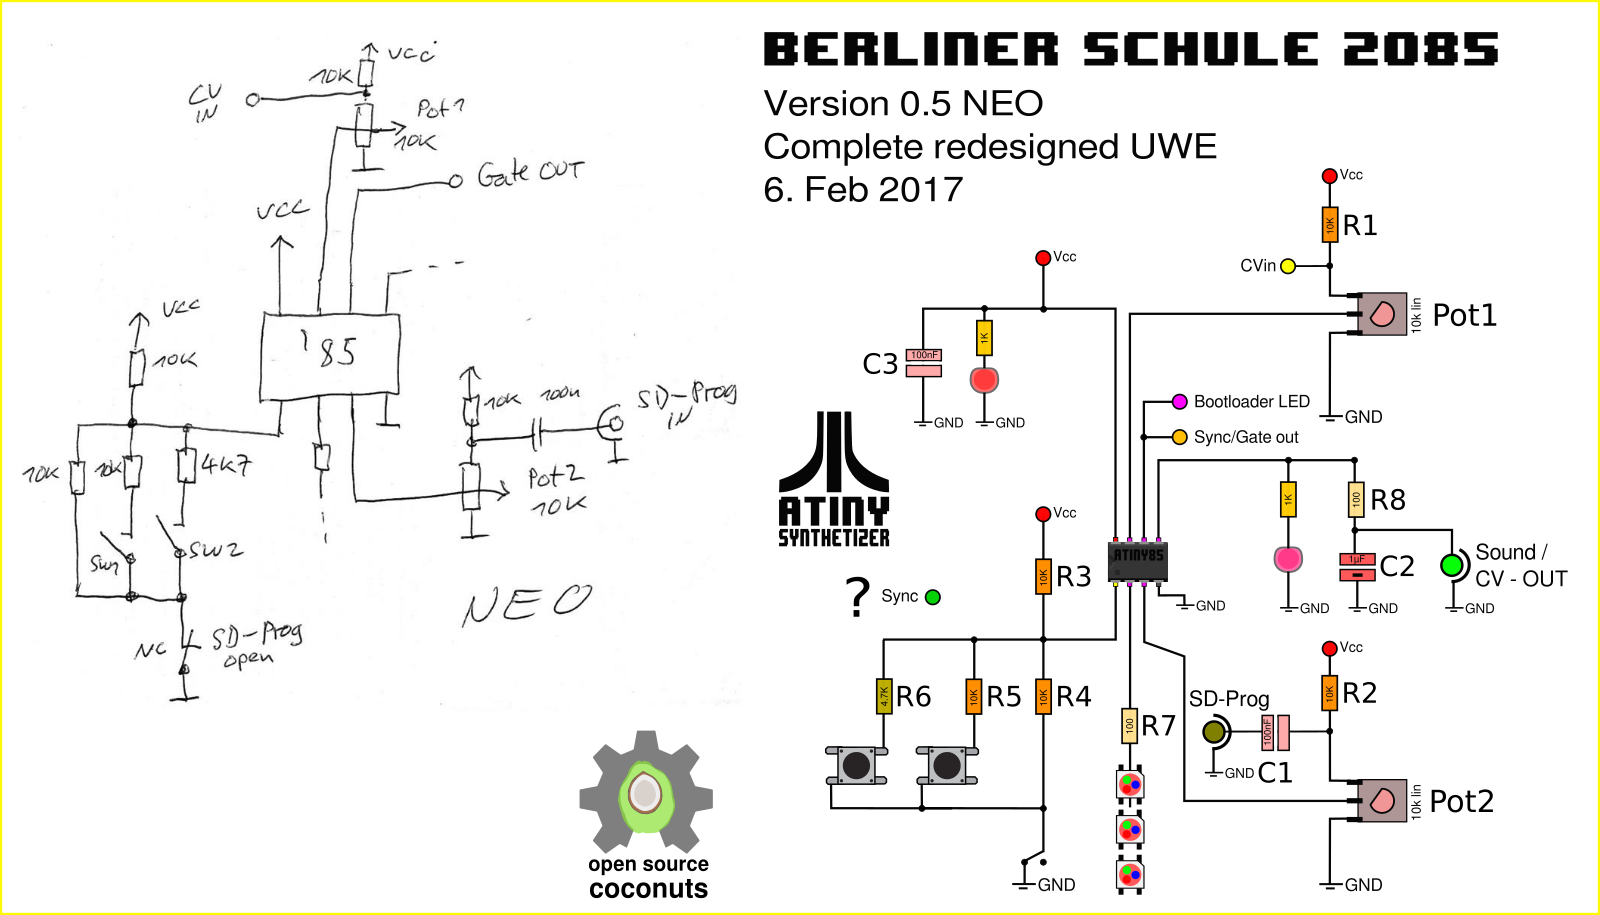 Updated Schematics v0.5, Uwe's Redesign